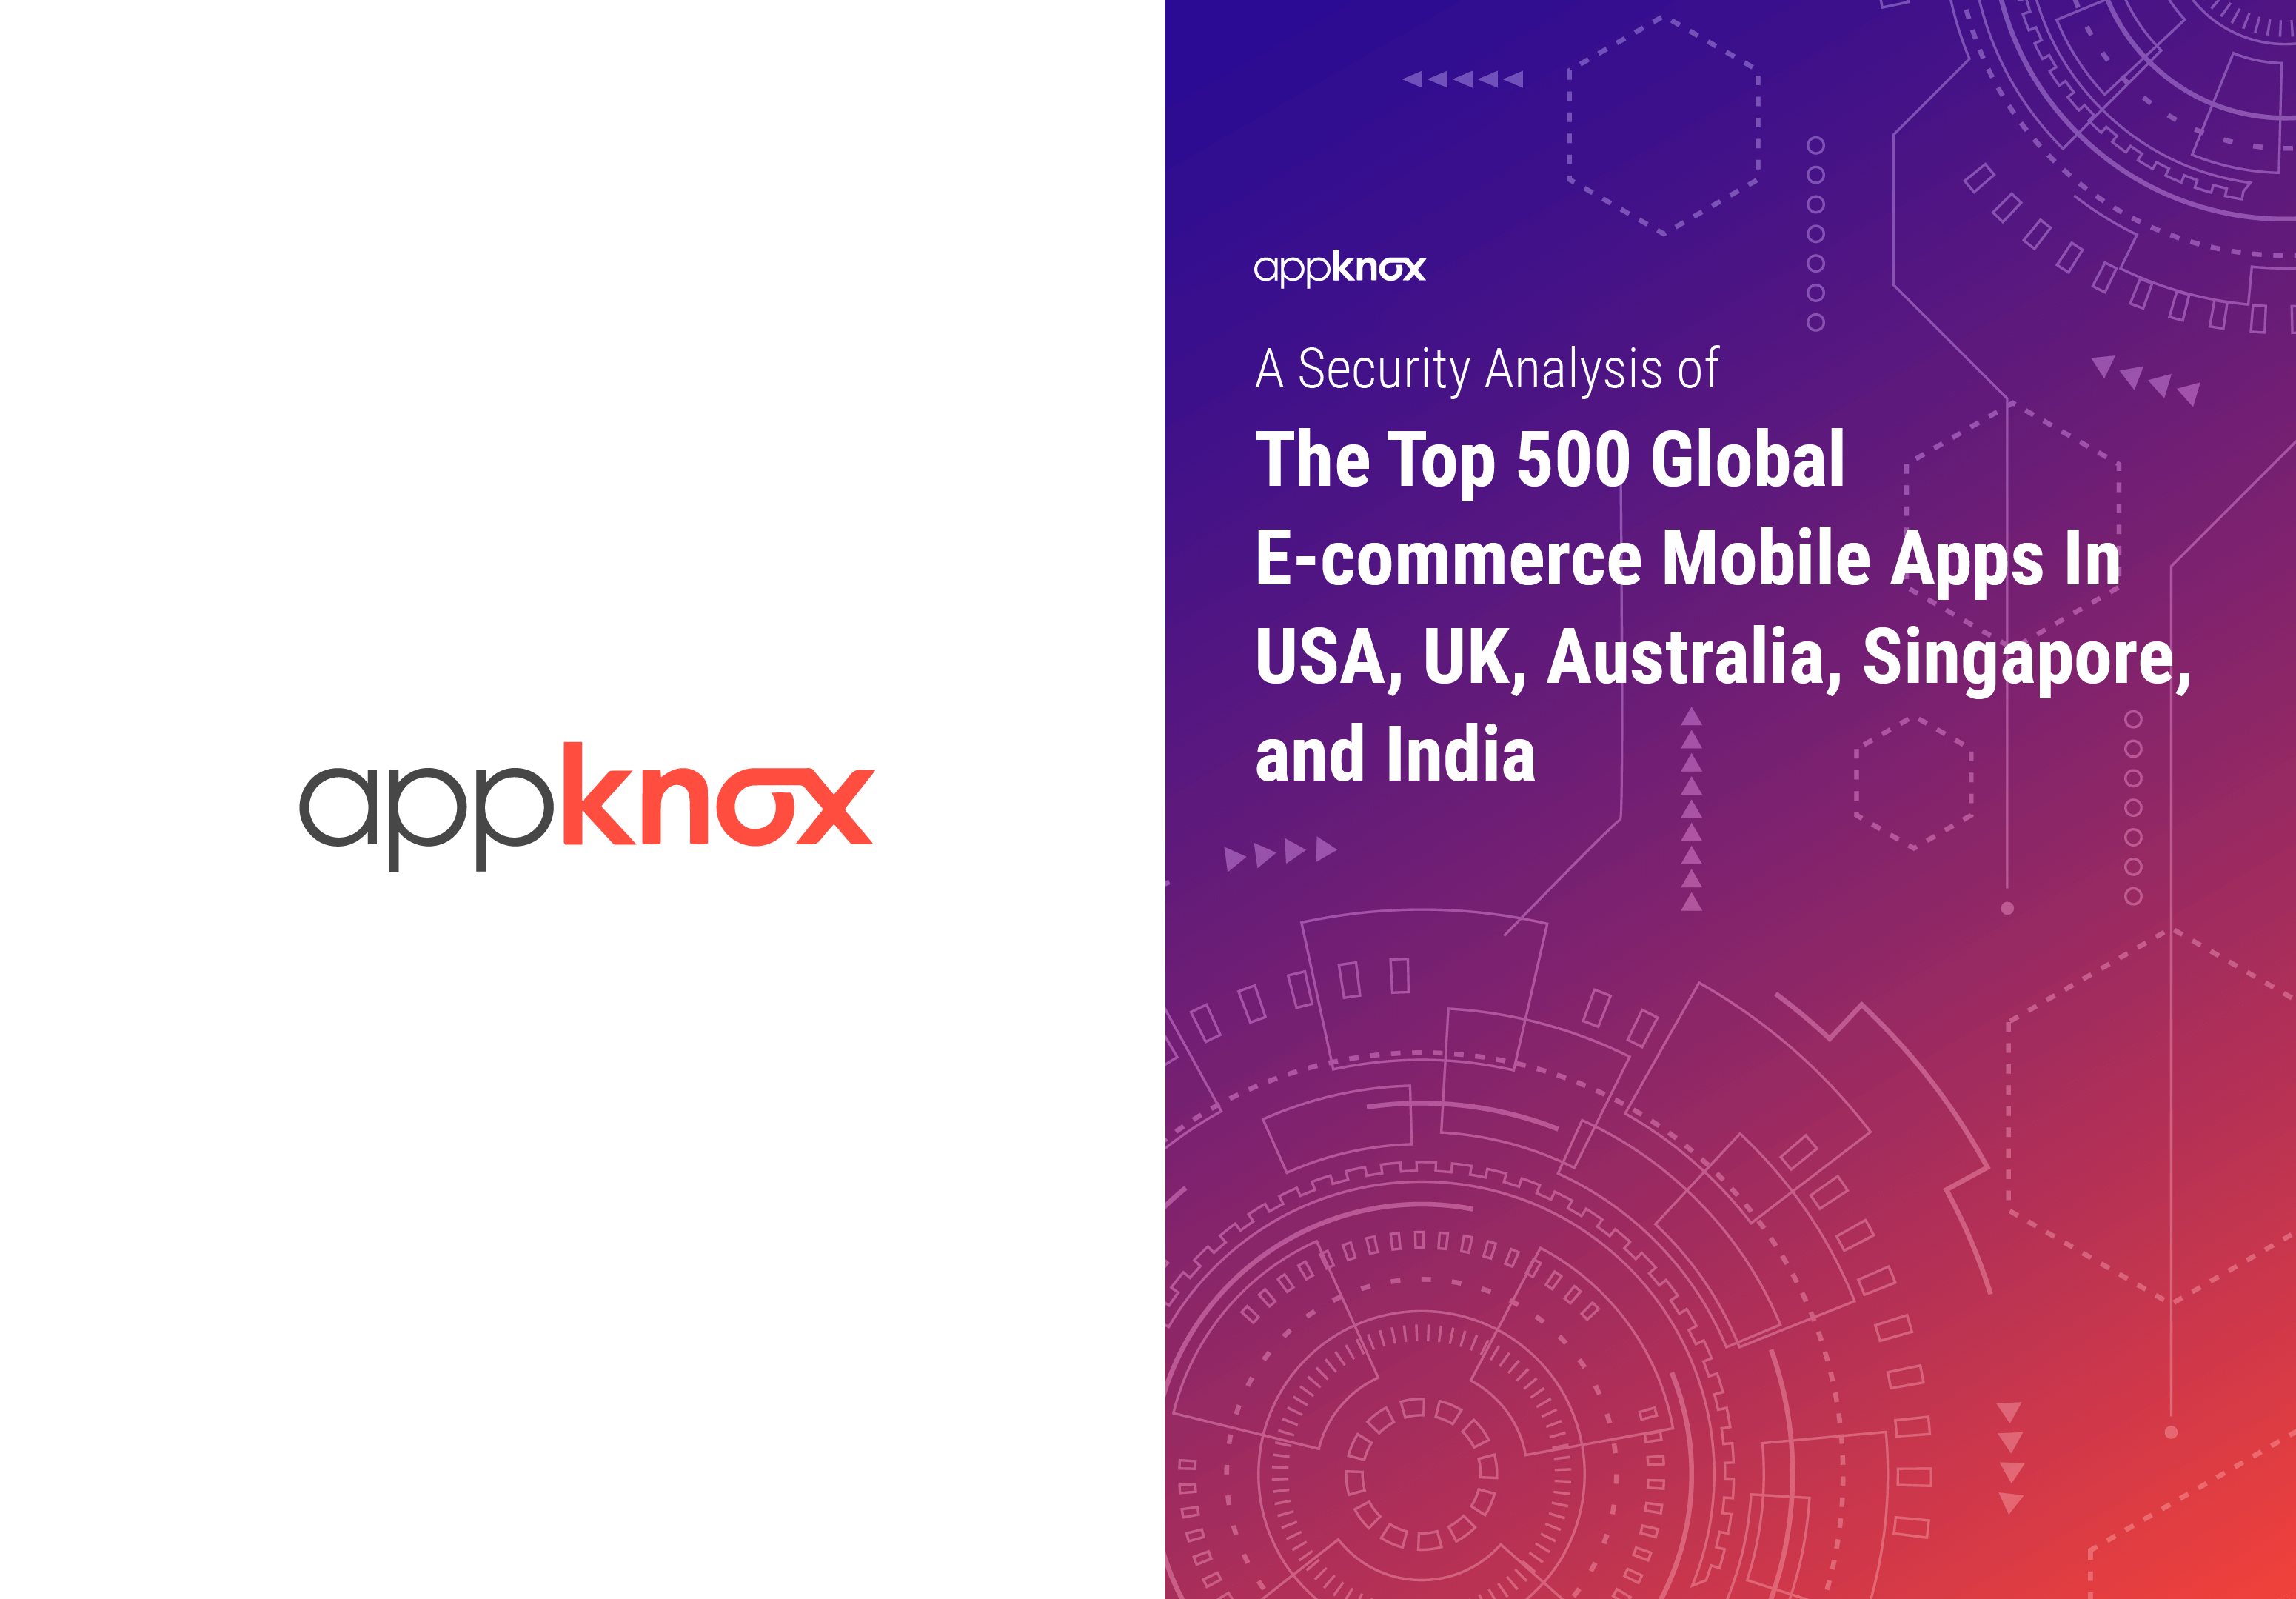 REPORTS - A Security Analysis of The Top 500 Global E-commerce Mobile Apps In USA, UK, Australia, Singapore, and India